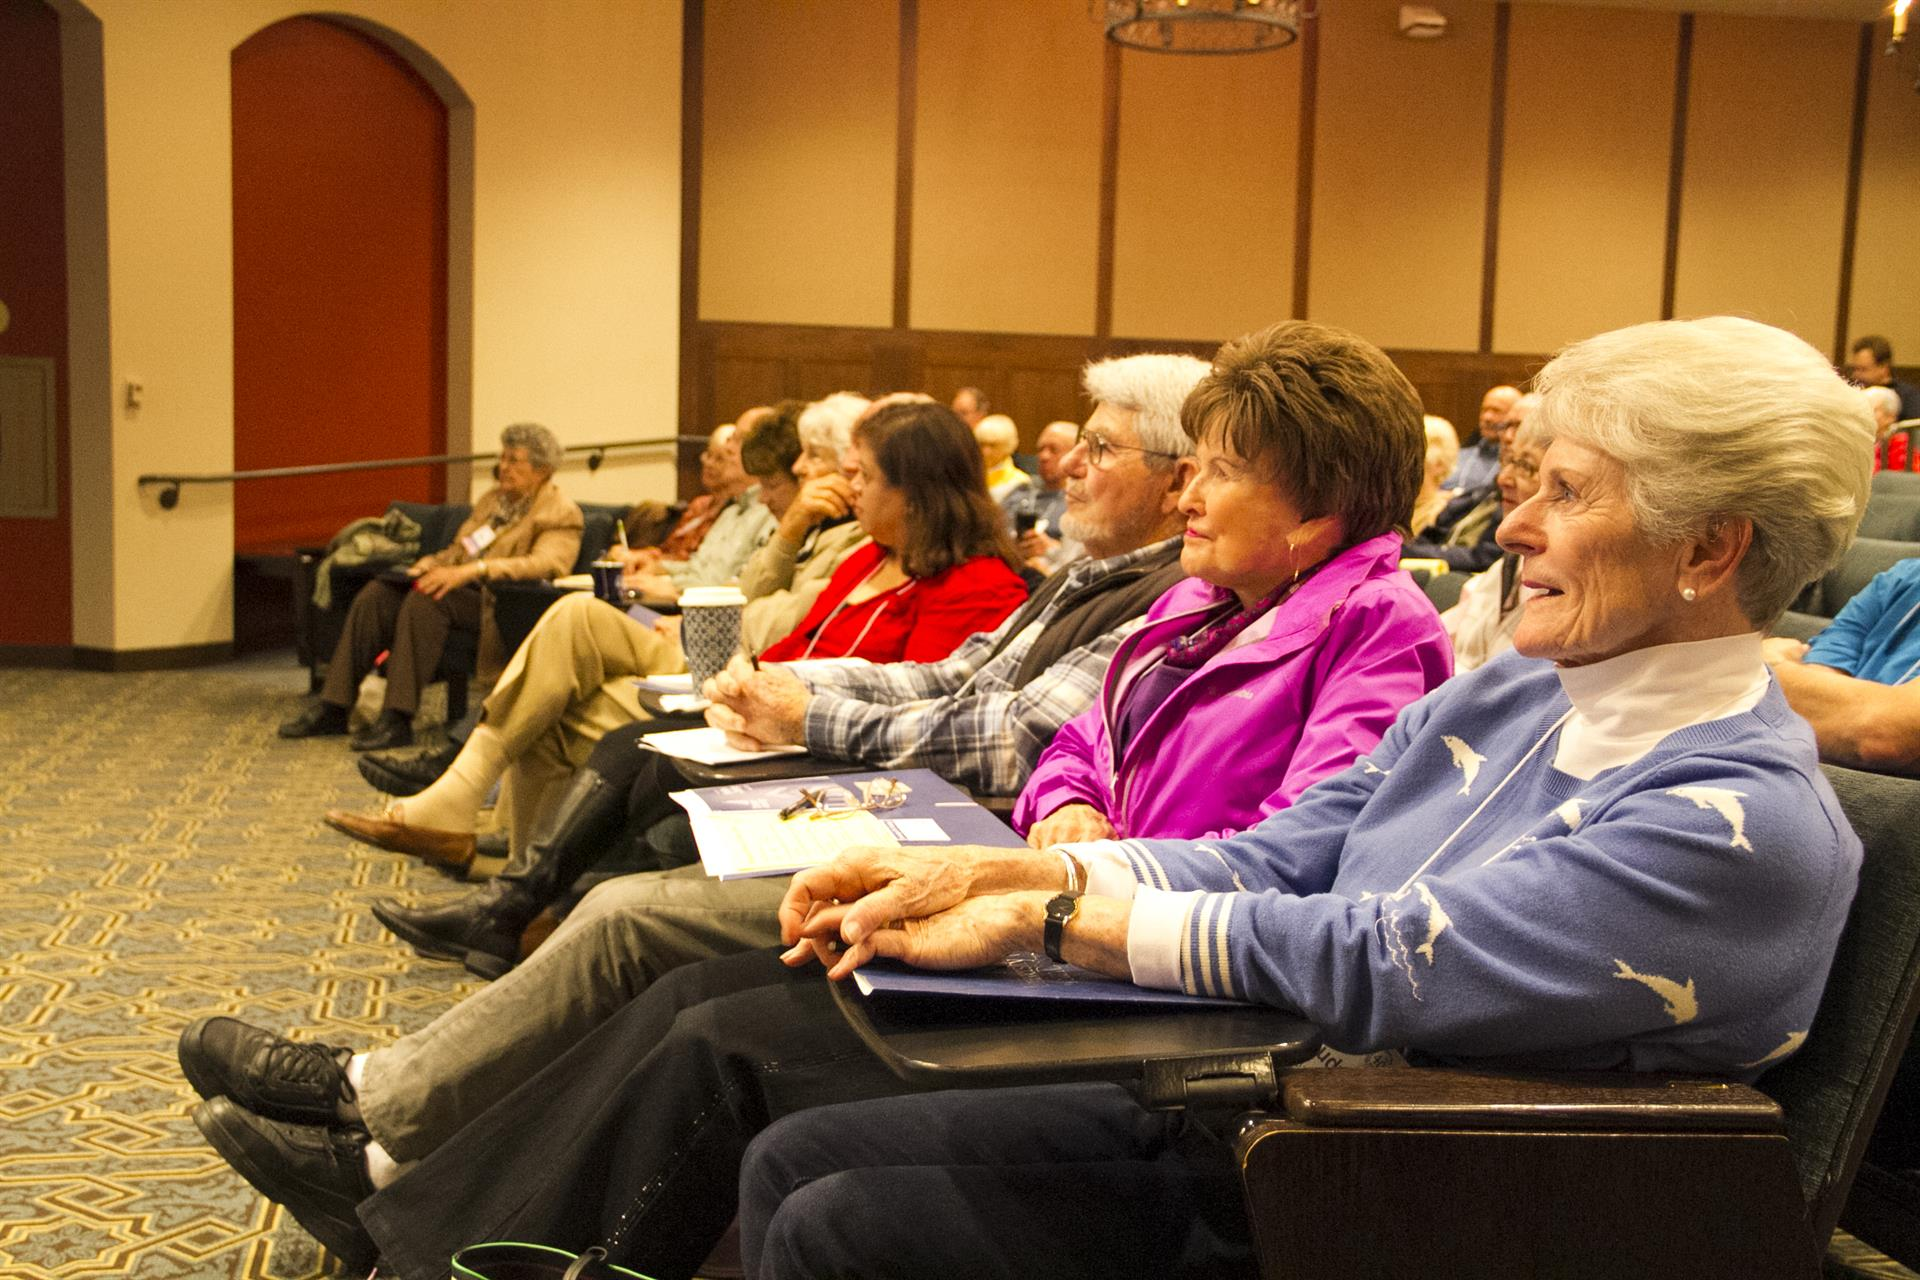 Life-long learners listen intently as President Harris speaks during January's University of the Third Age session.